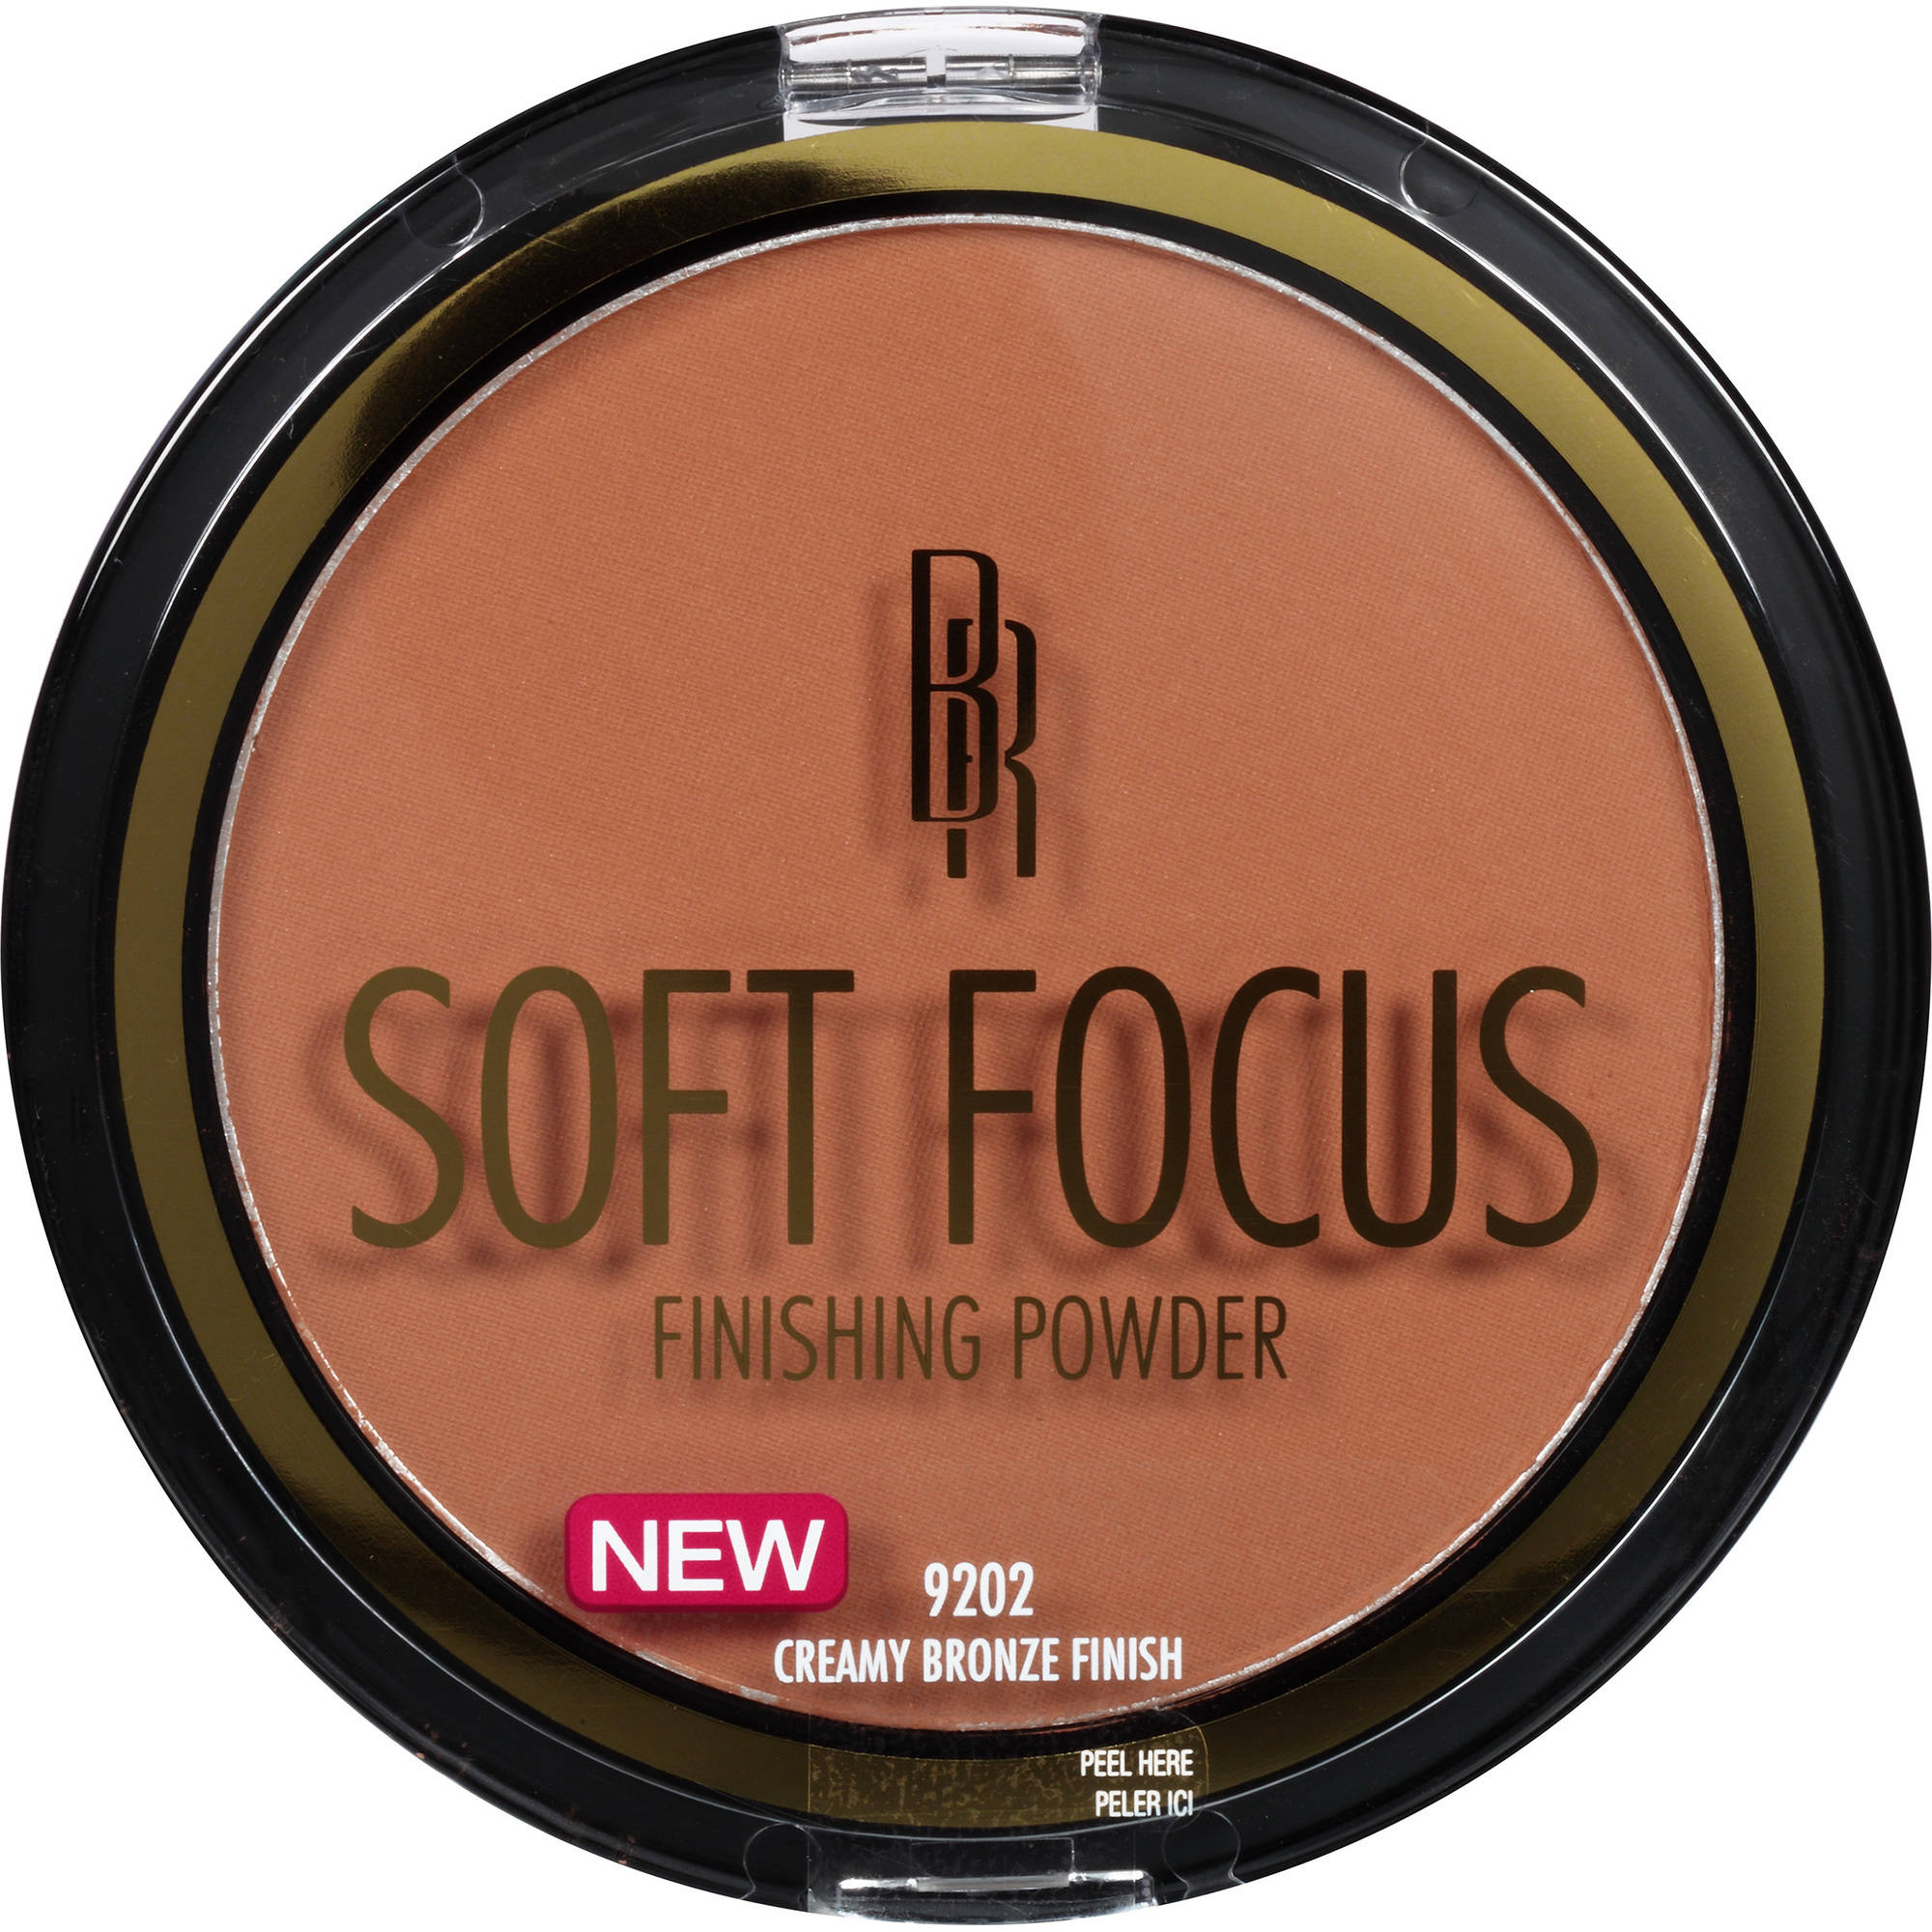 Black Radiance True Complexion Soft Focus Finishing Powder, 9202 Creamy Bronze Finish, 0.46 oz